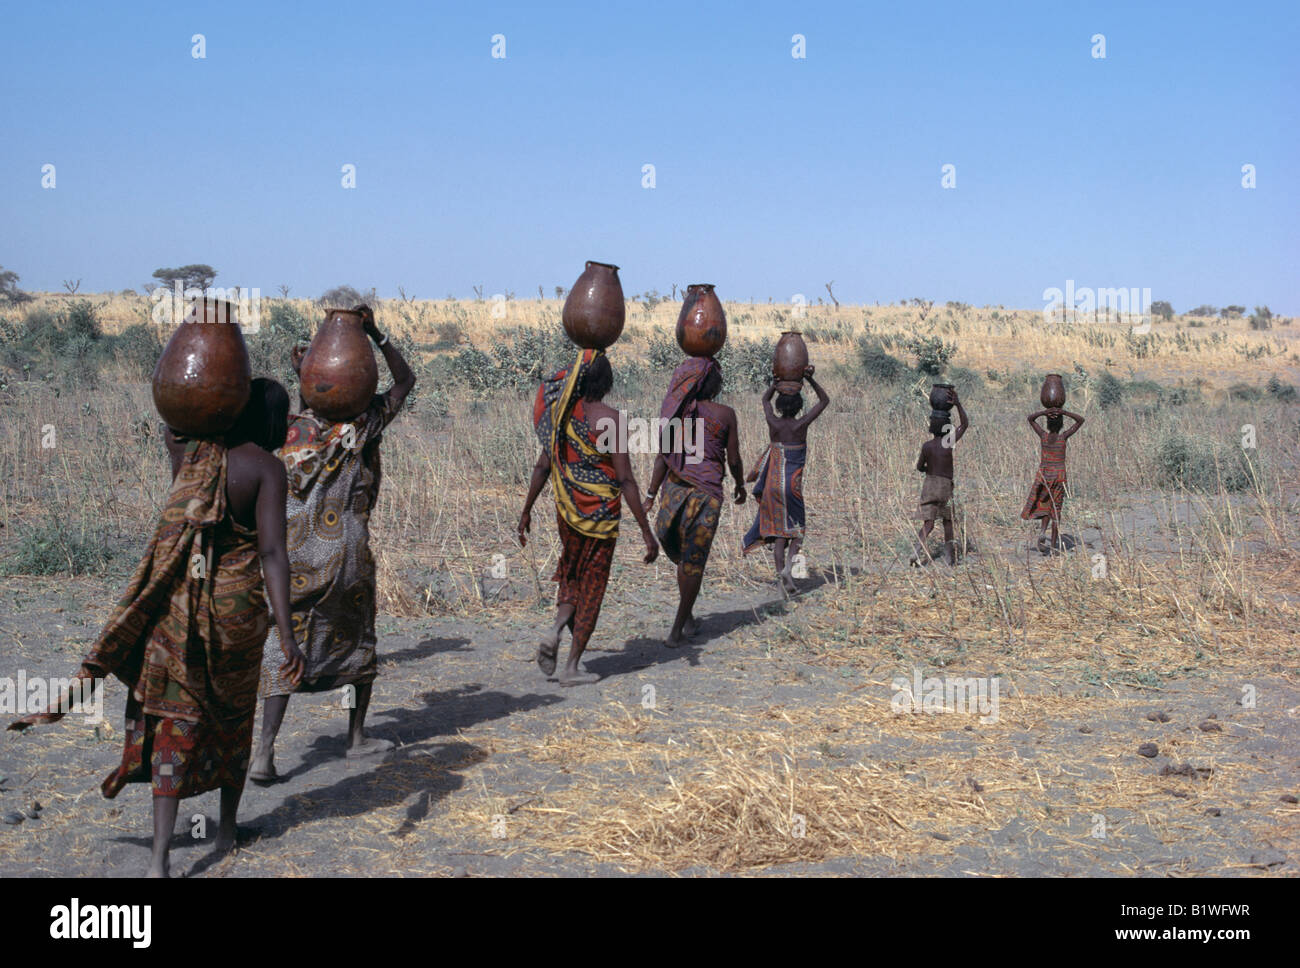 chad central africa kanimbo tribe women and children fetching water